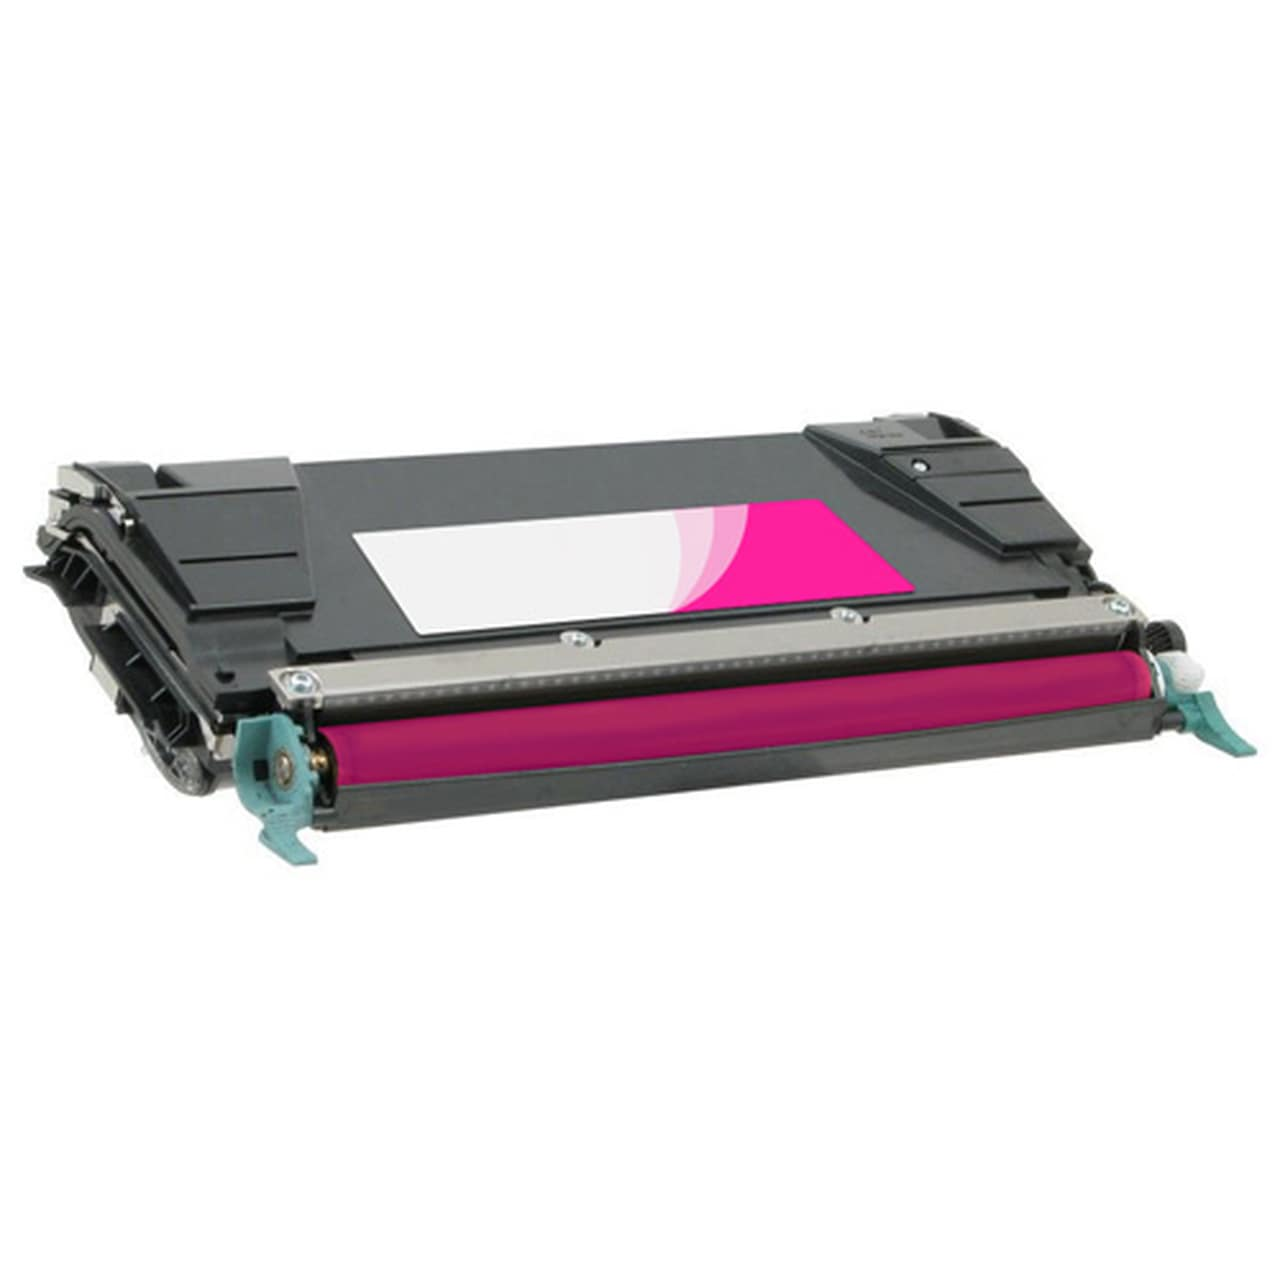 C5220MS Toner Cartridge - Lexmark Remanufactured  (Magenta)